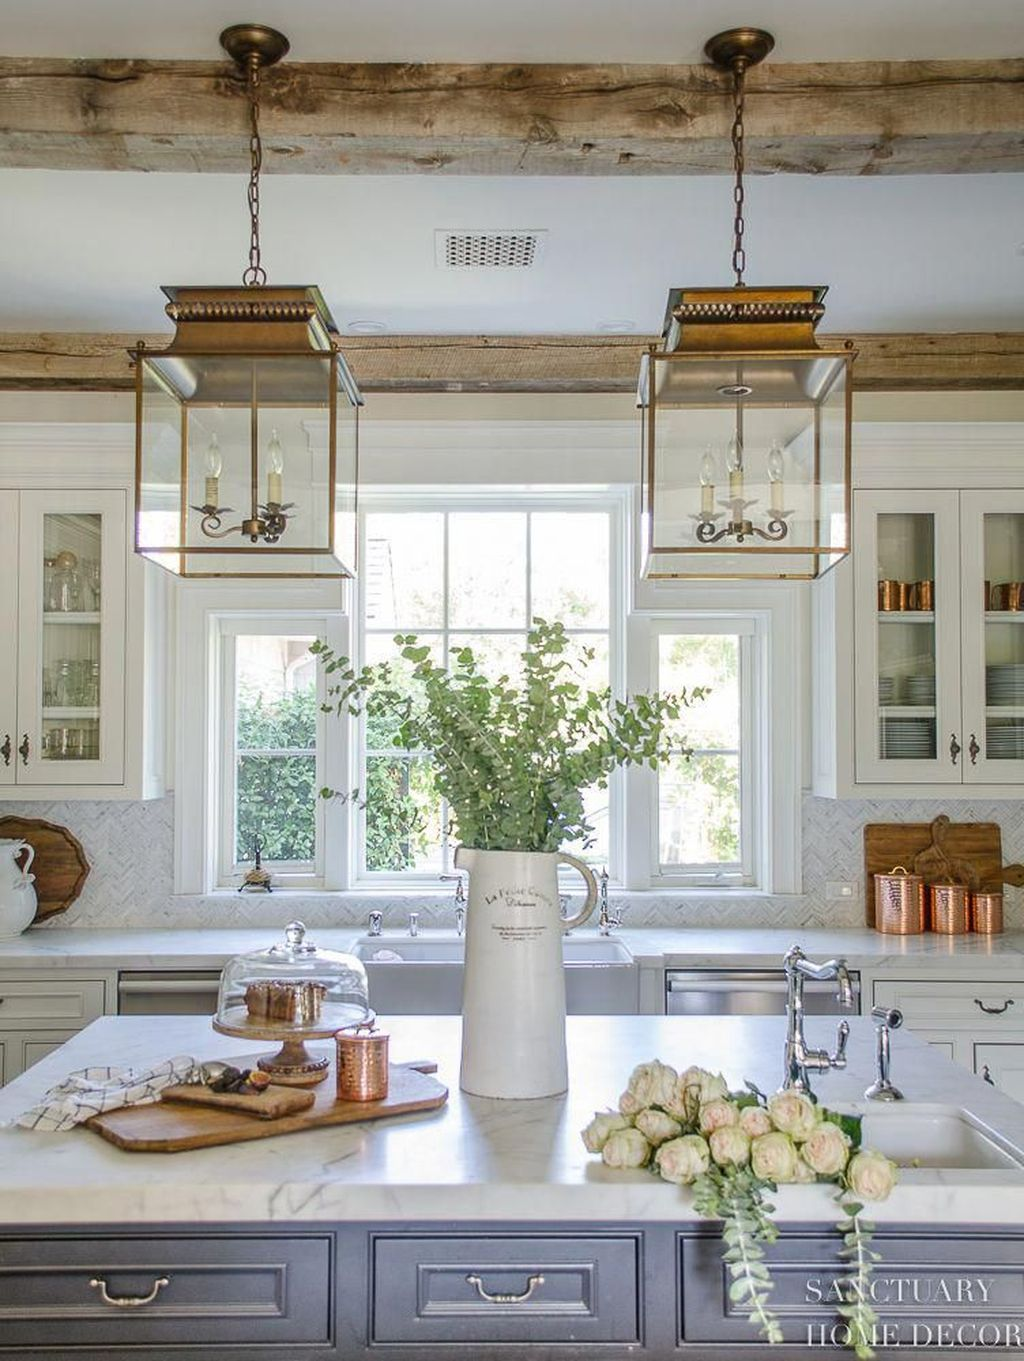 Inspiring Country Kitchen Decor Ideas You Should Copy 25